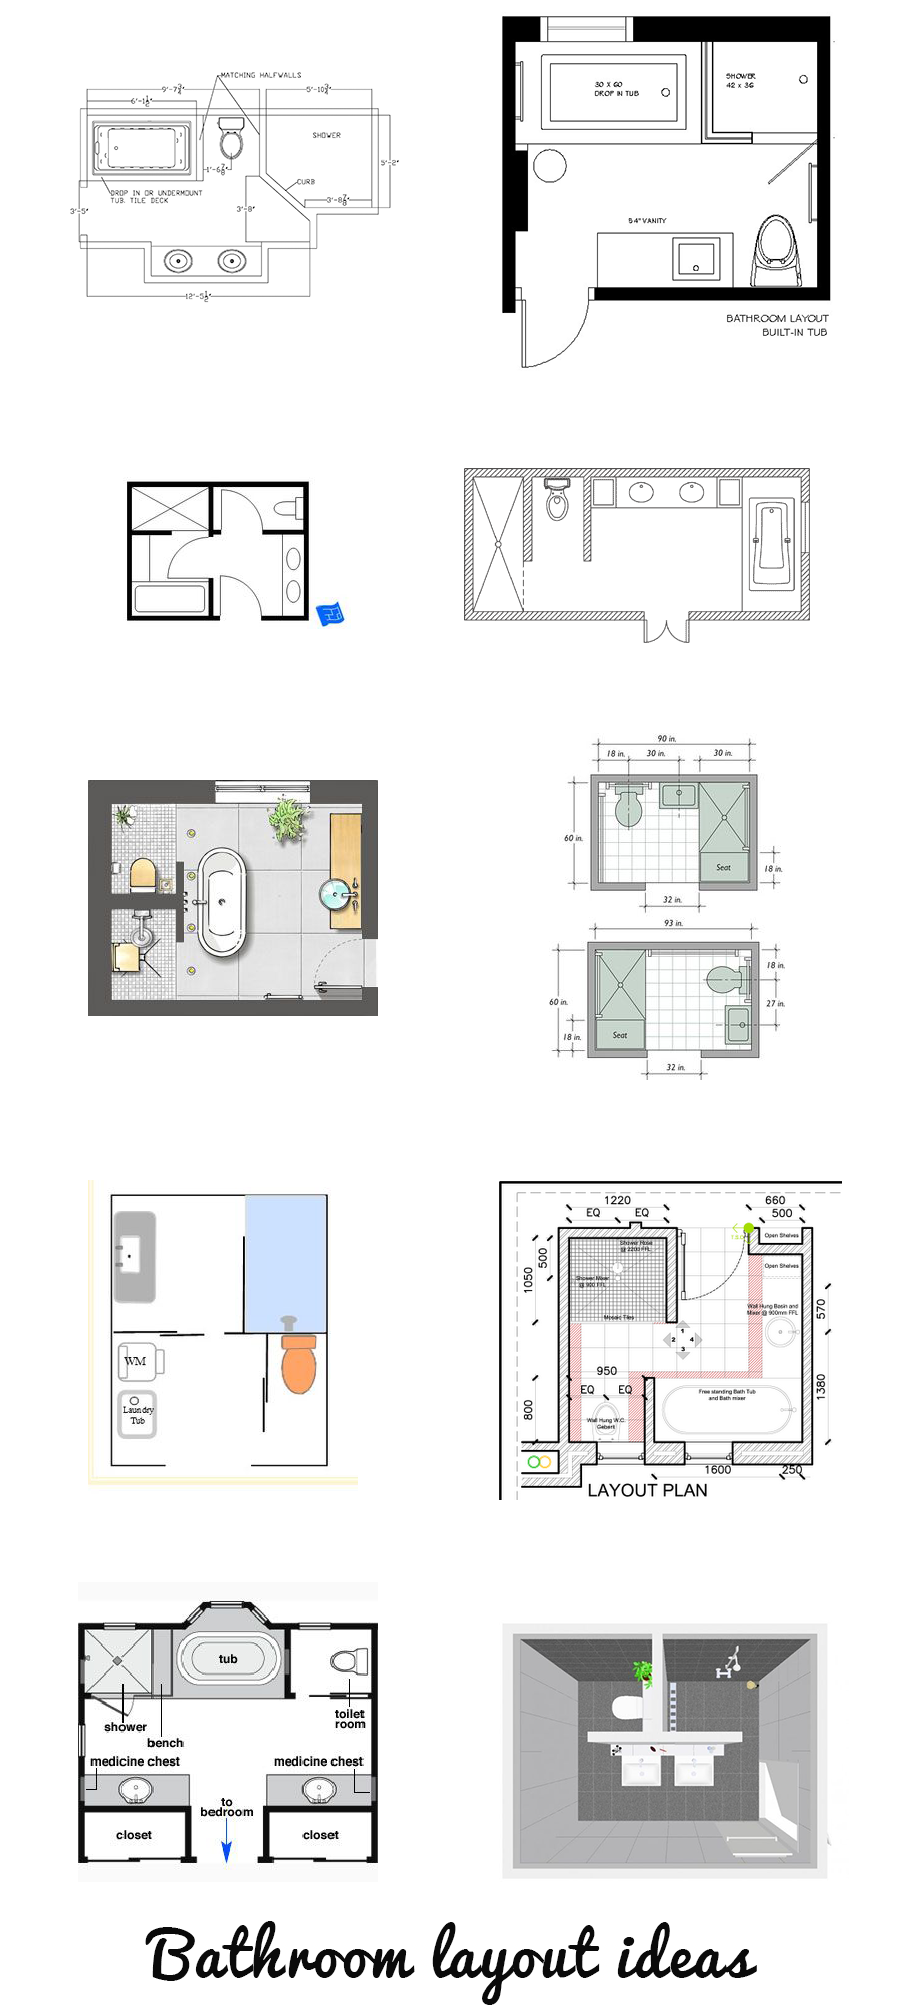 Best 12 Bathroom Layout Design Ideas | Home | Pinterest | Bathroom ...